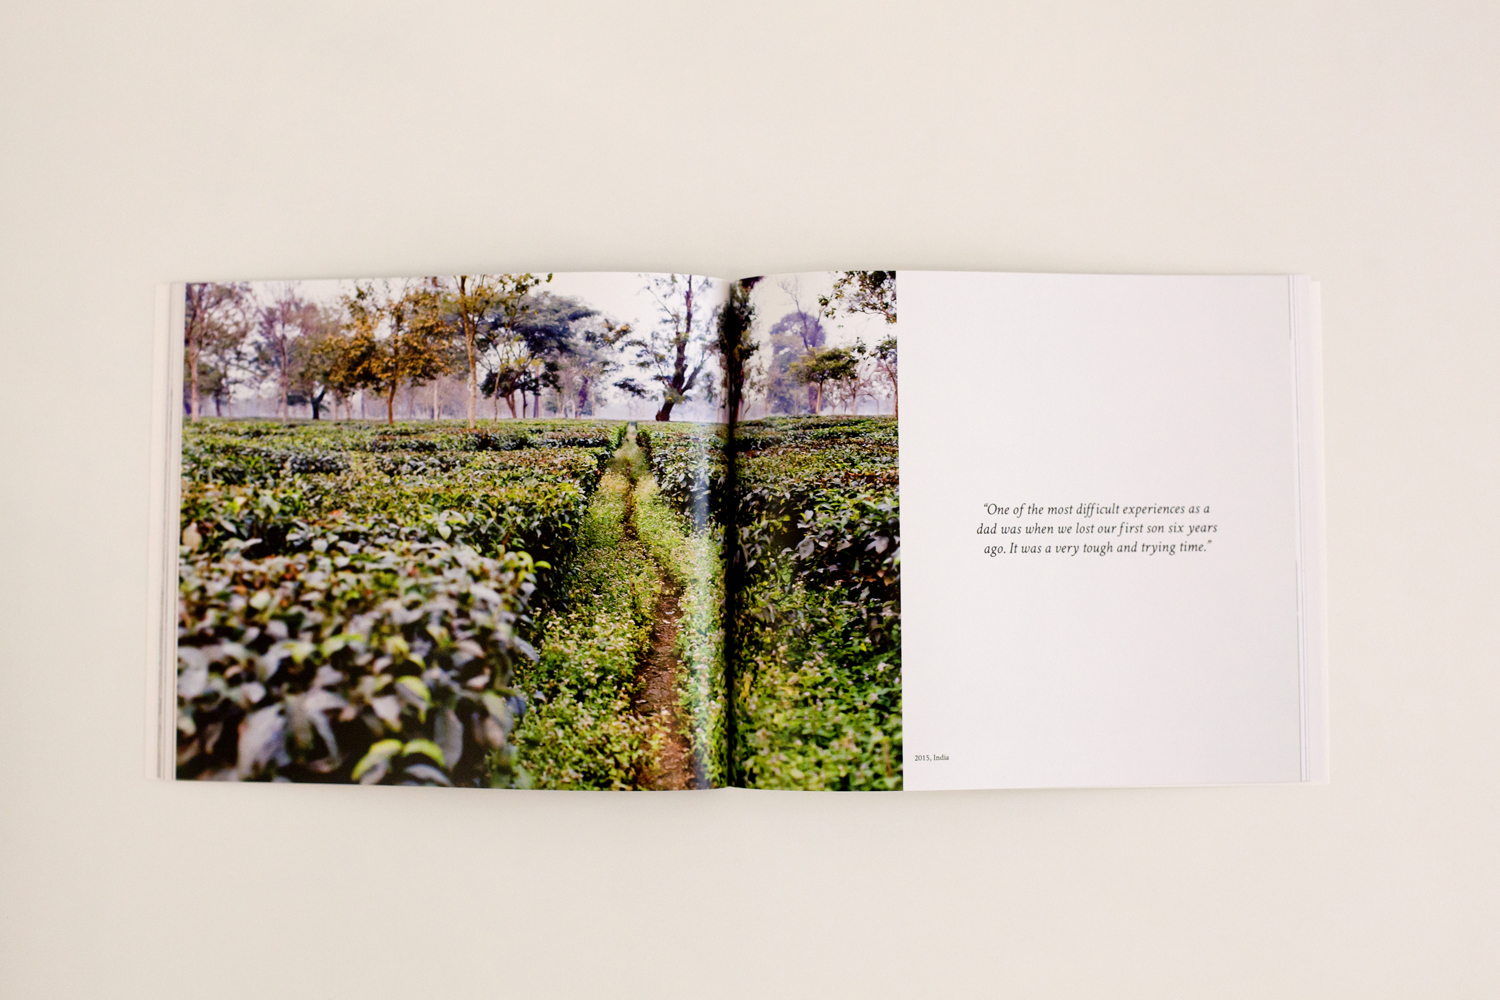 04-Inside Pages-03.jpg